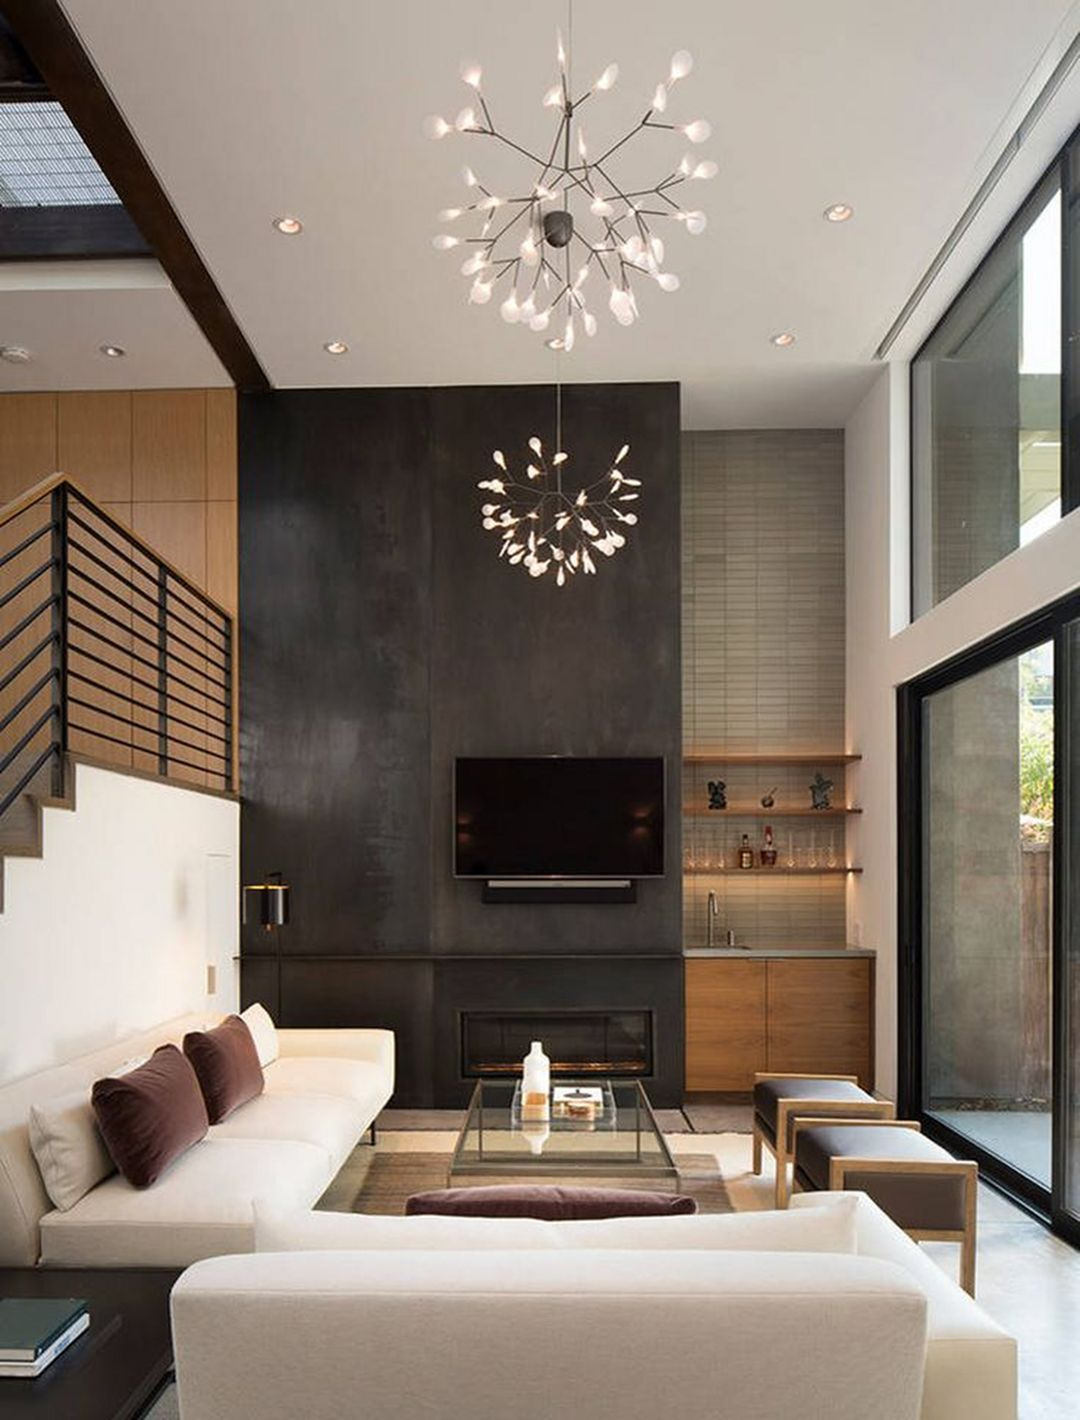 The Most Beautiful Interior Design House Inspirational 20 Most Beautiful and Most Popular Home Interiors that Will